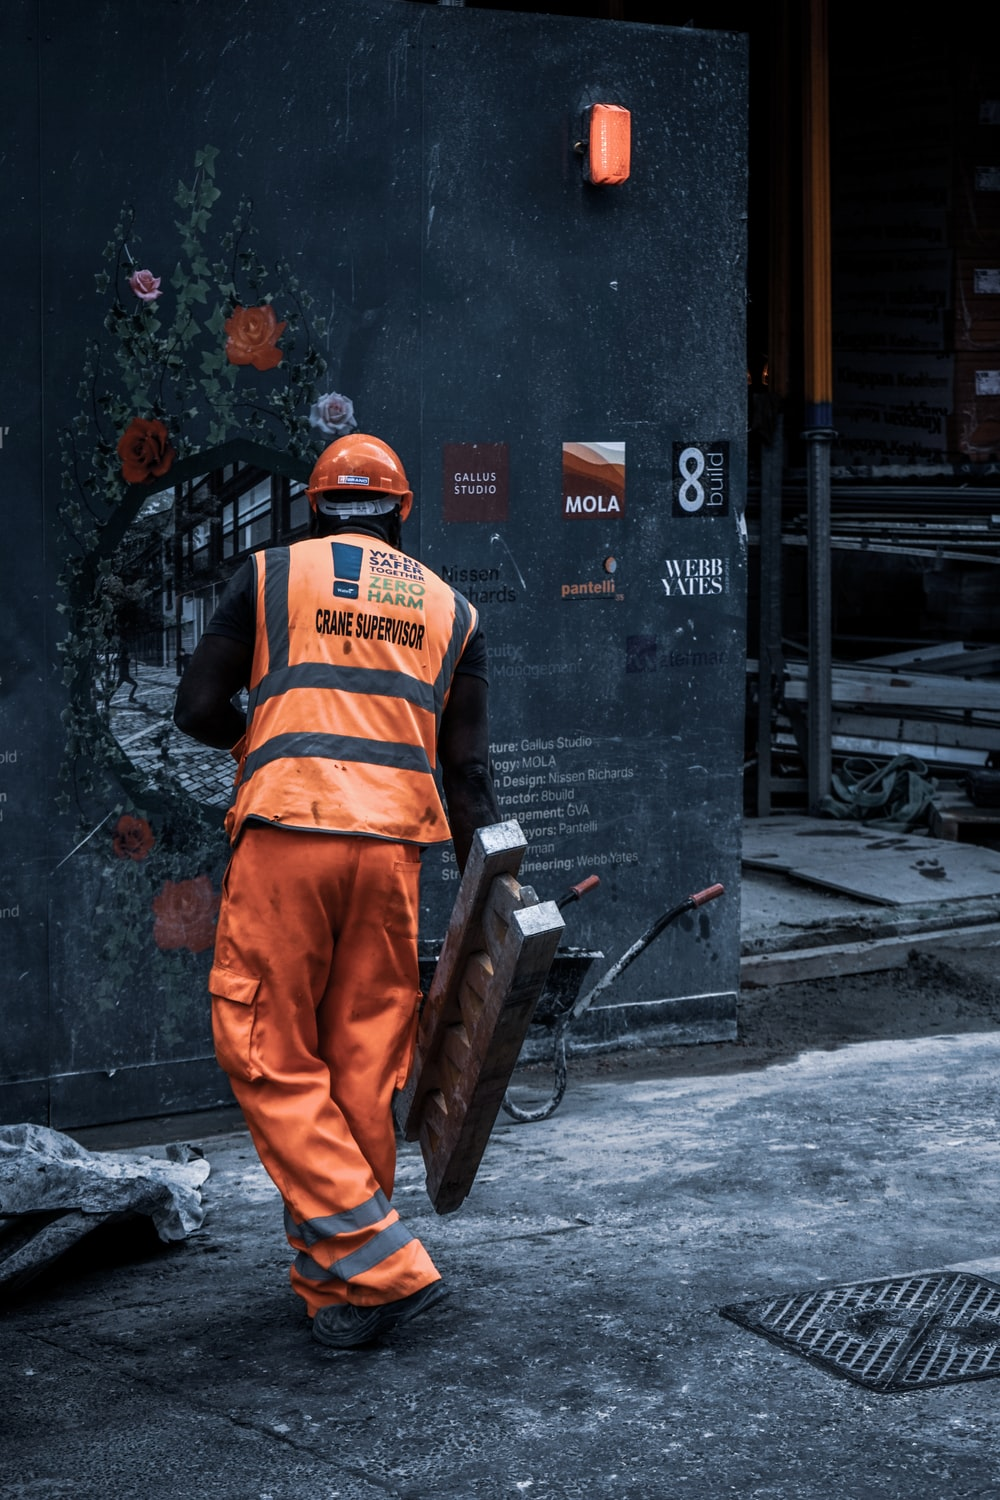 man in orange safety vest holding metal